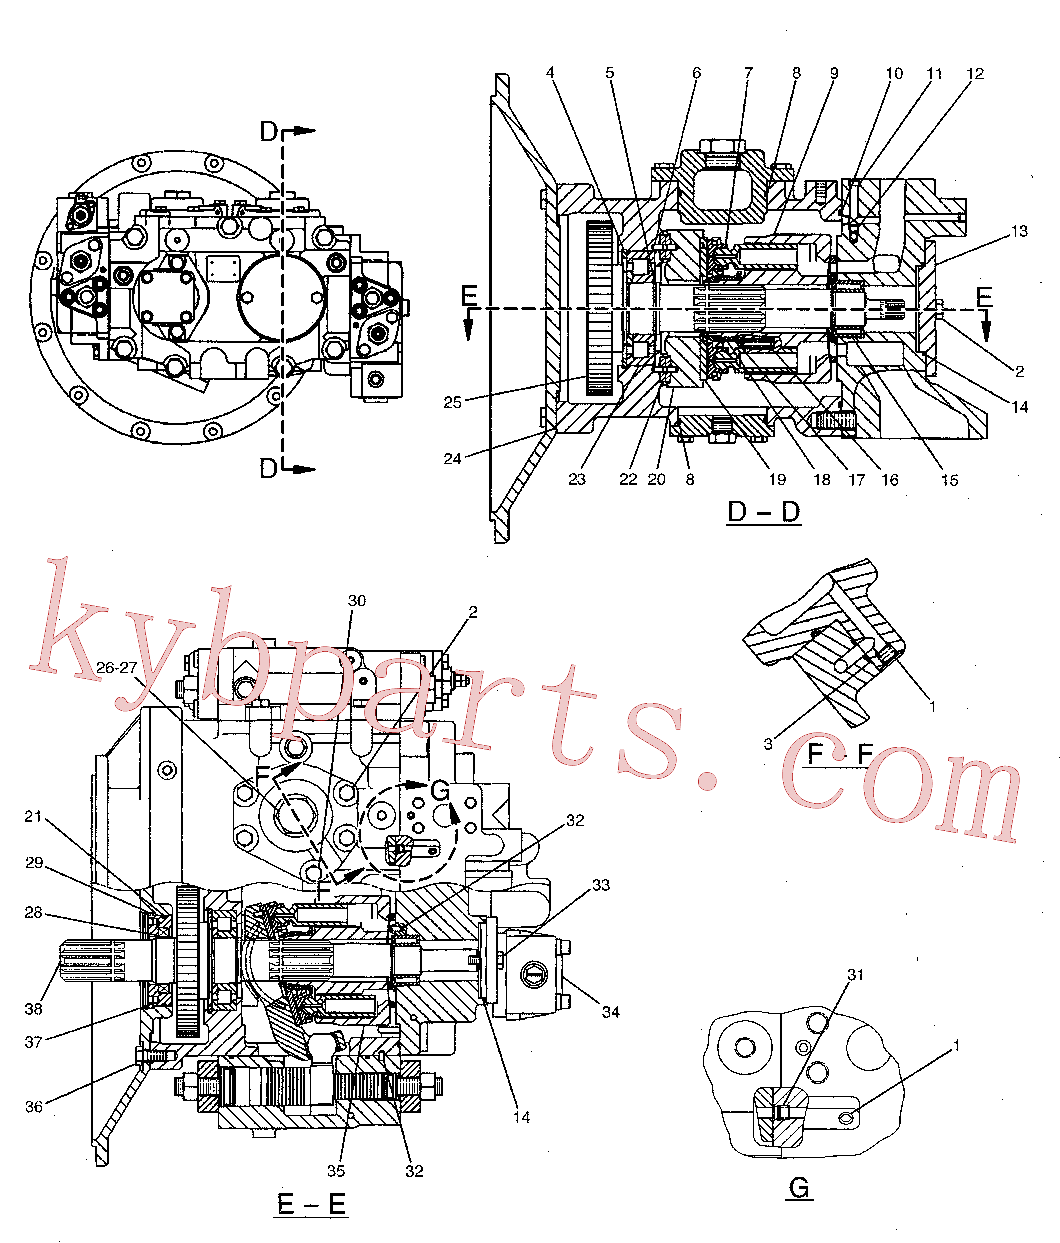 CAT 095-0946 for 326D2 Excavator(EXC) hydraulic system 173-3381 Assembly